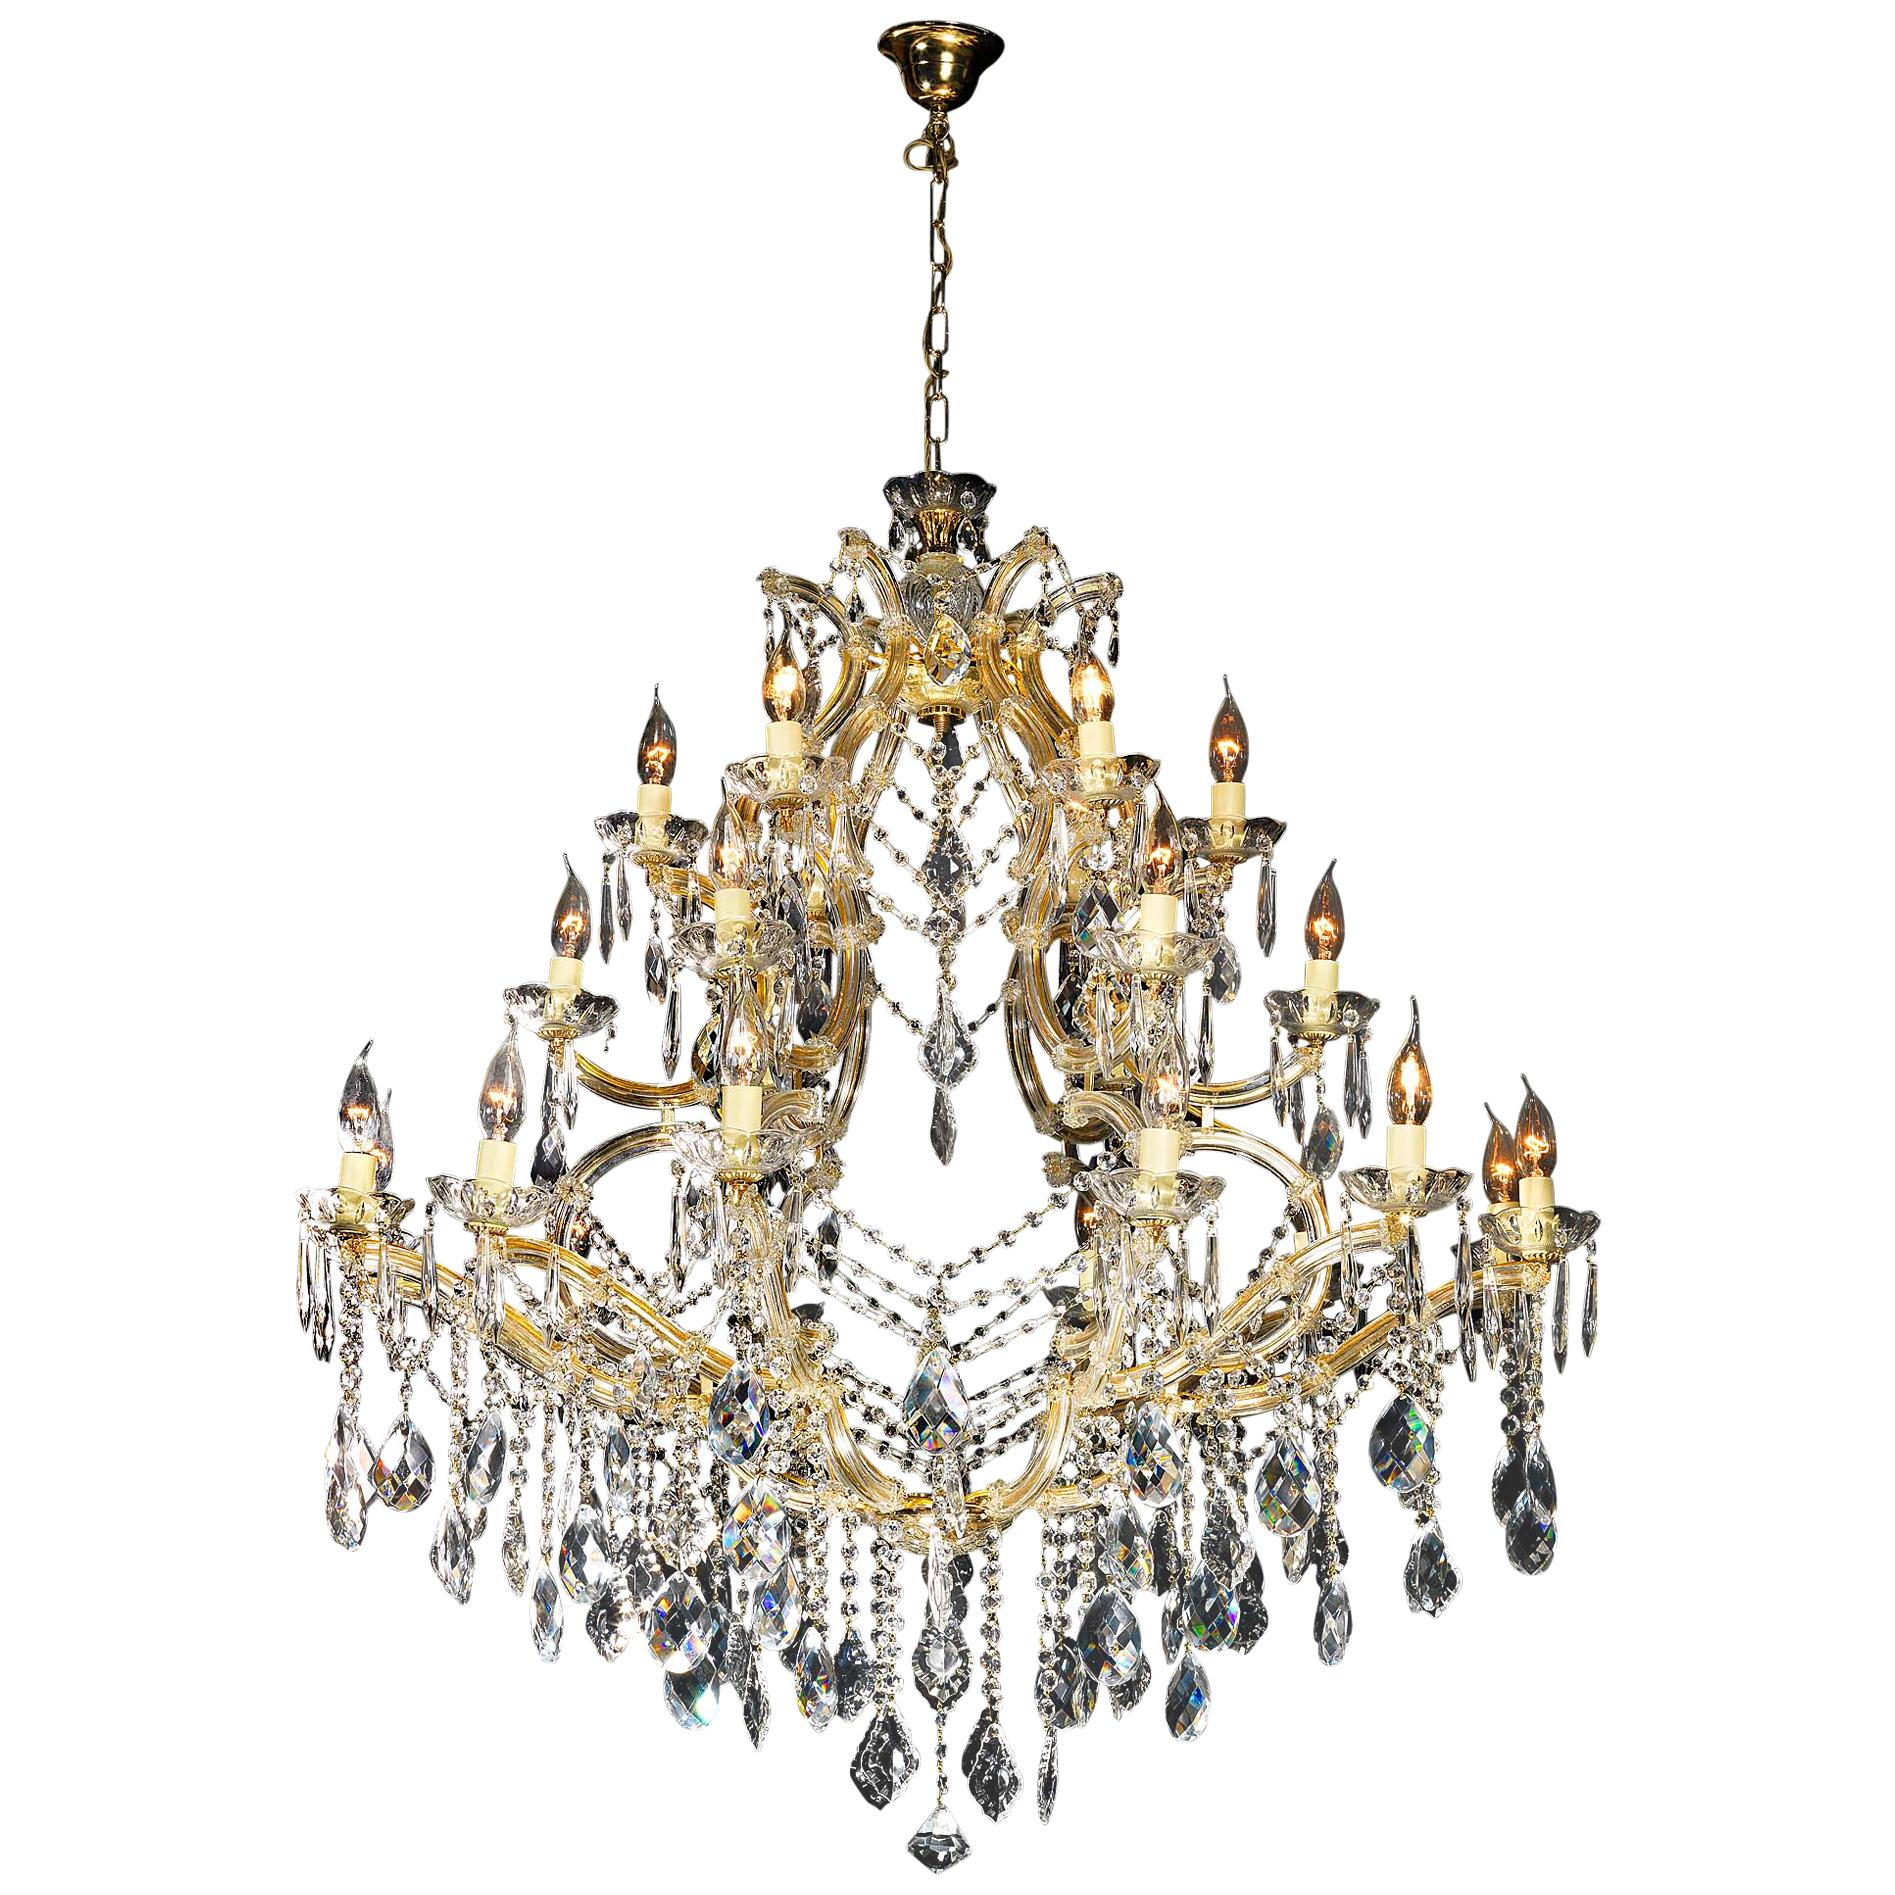 Large Cut Glass Twenty Four-Light Chandelier in the Louis XVI Manner